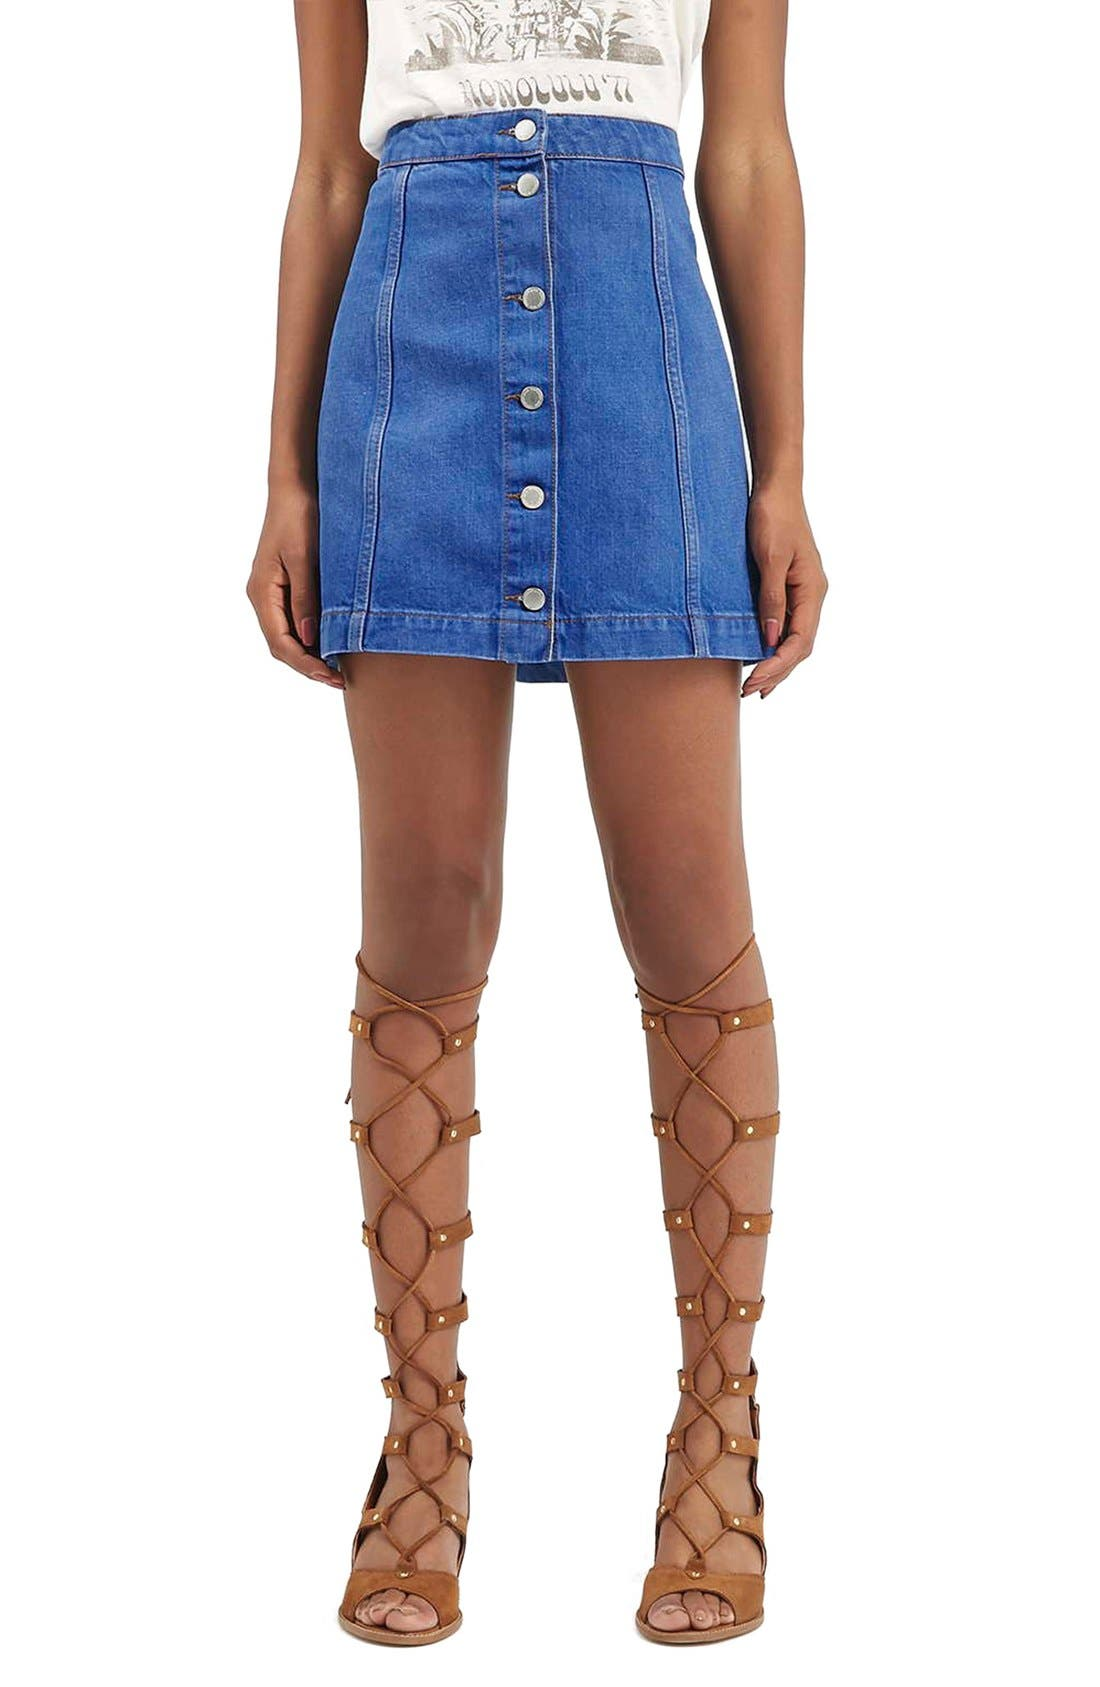 Alternate Image 1 Selected - Topshop Moto Button Front A-Line Skirt (Bright Blue)